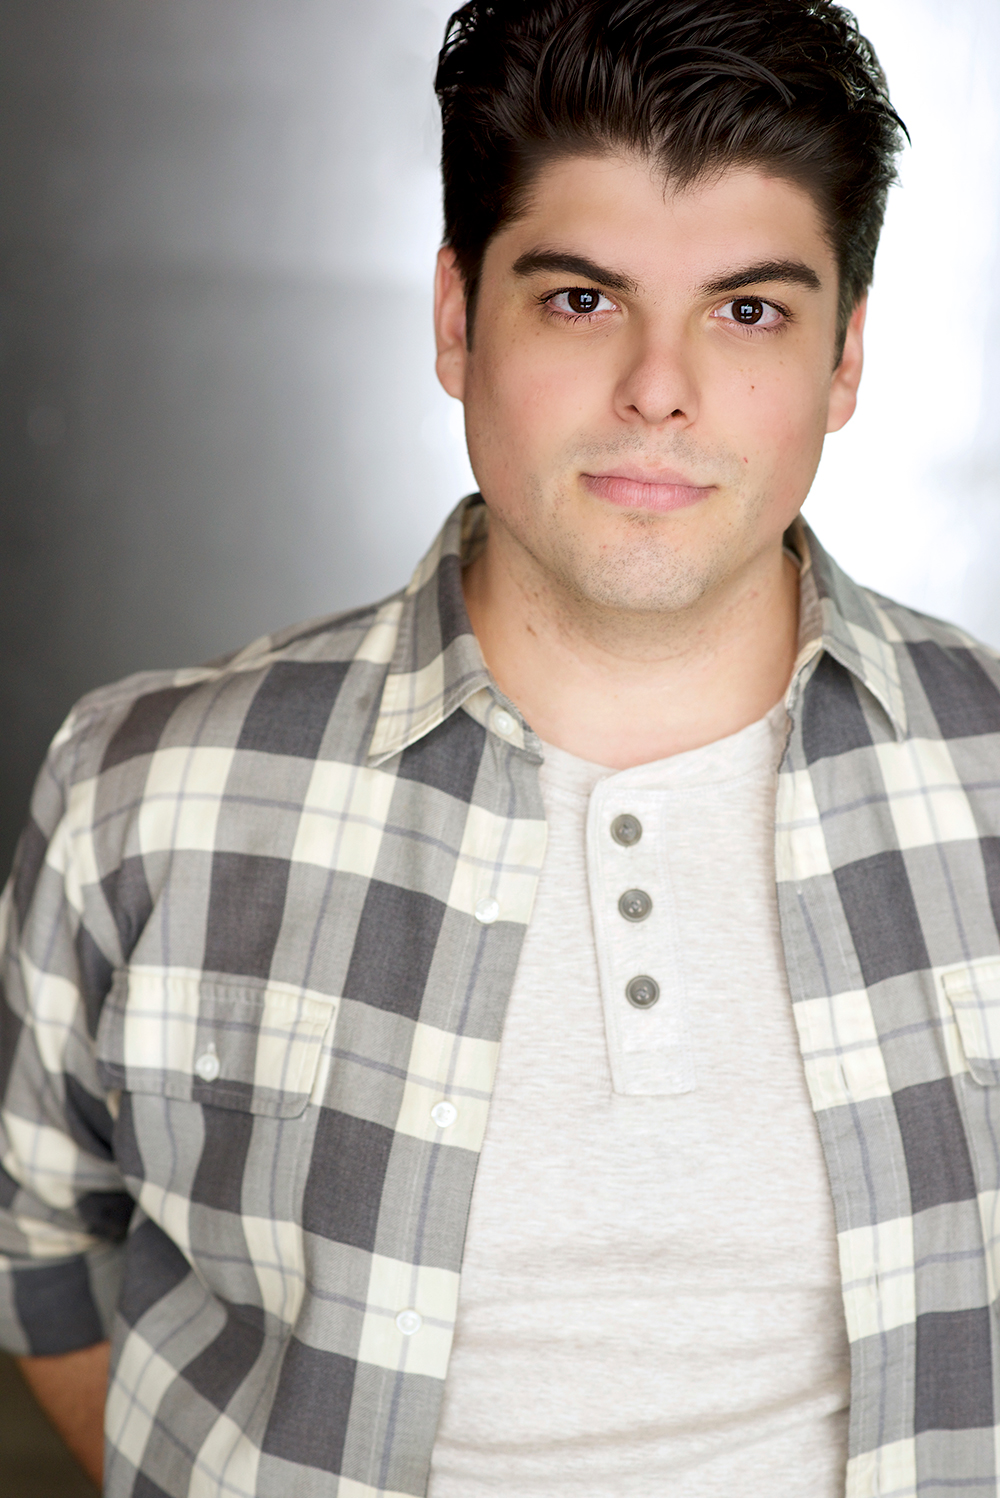 SAM MASSARO - MFA ACTING - University of California, Irvine